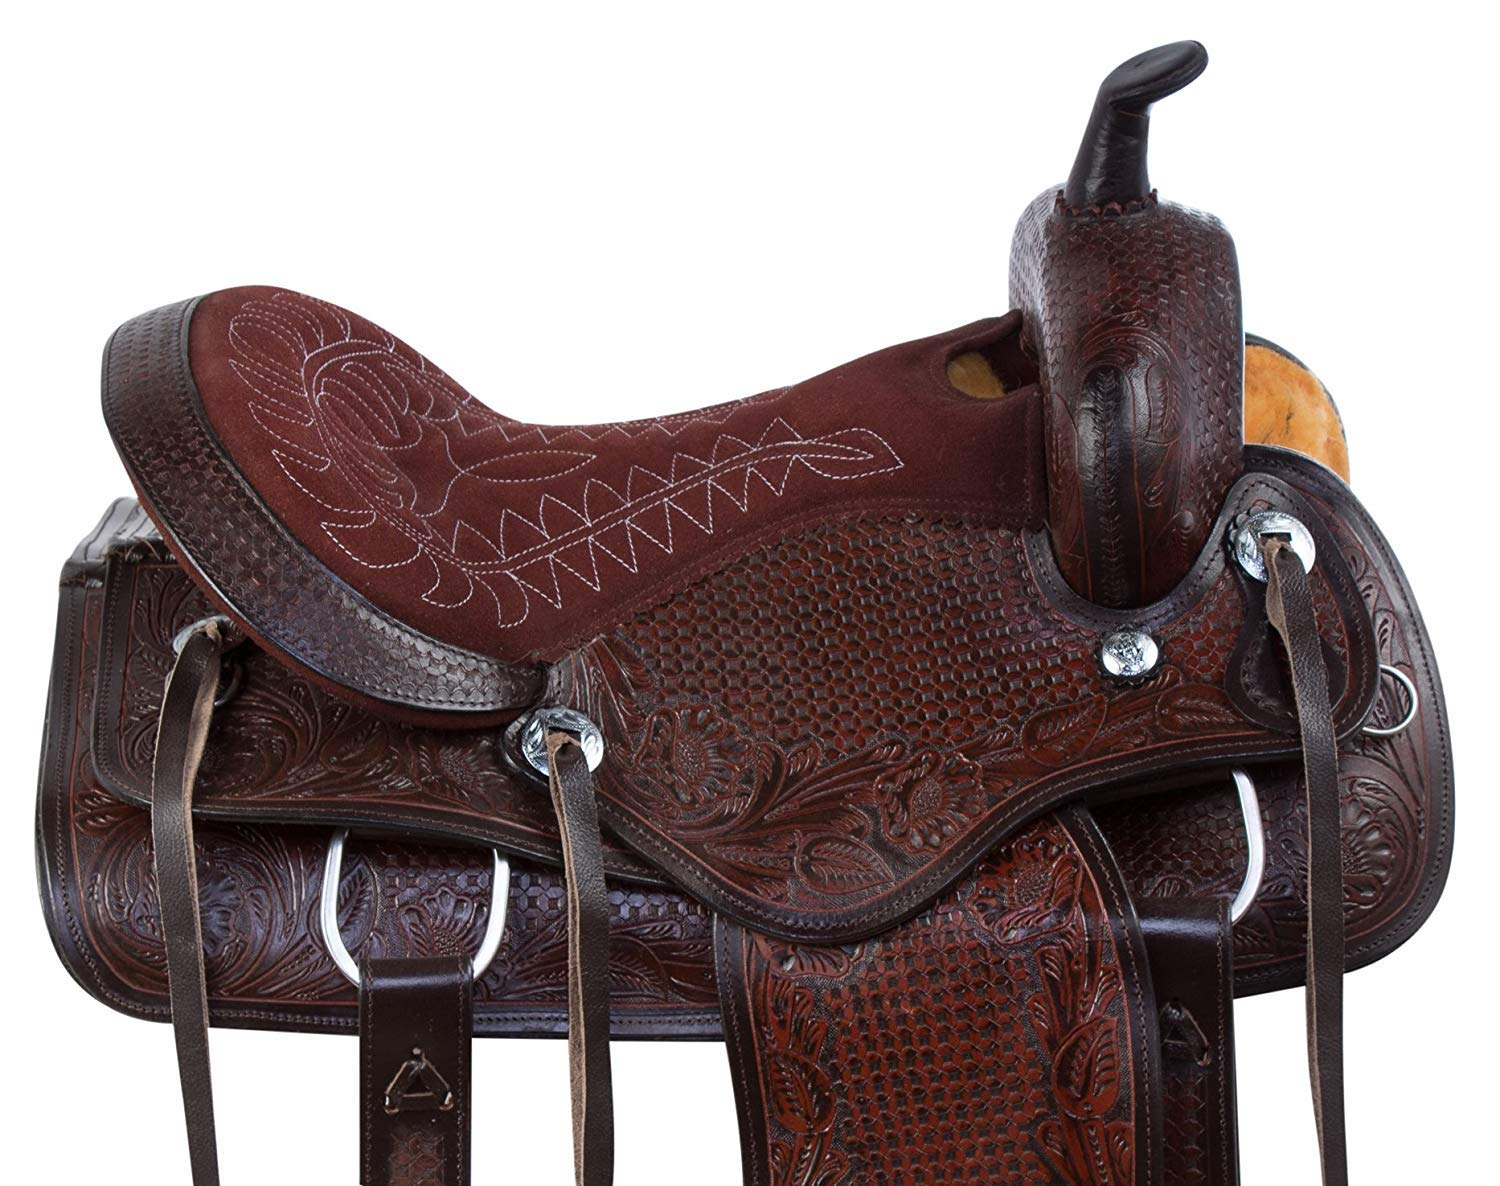 Reins Y/&Z Enterprises Premium Leather Western Barrel Racing Horse Saddle Tack Size 14 to 18 Inches Seat Available Get Matching Leather Headstall Breast Collar